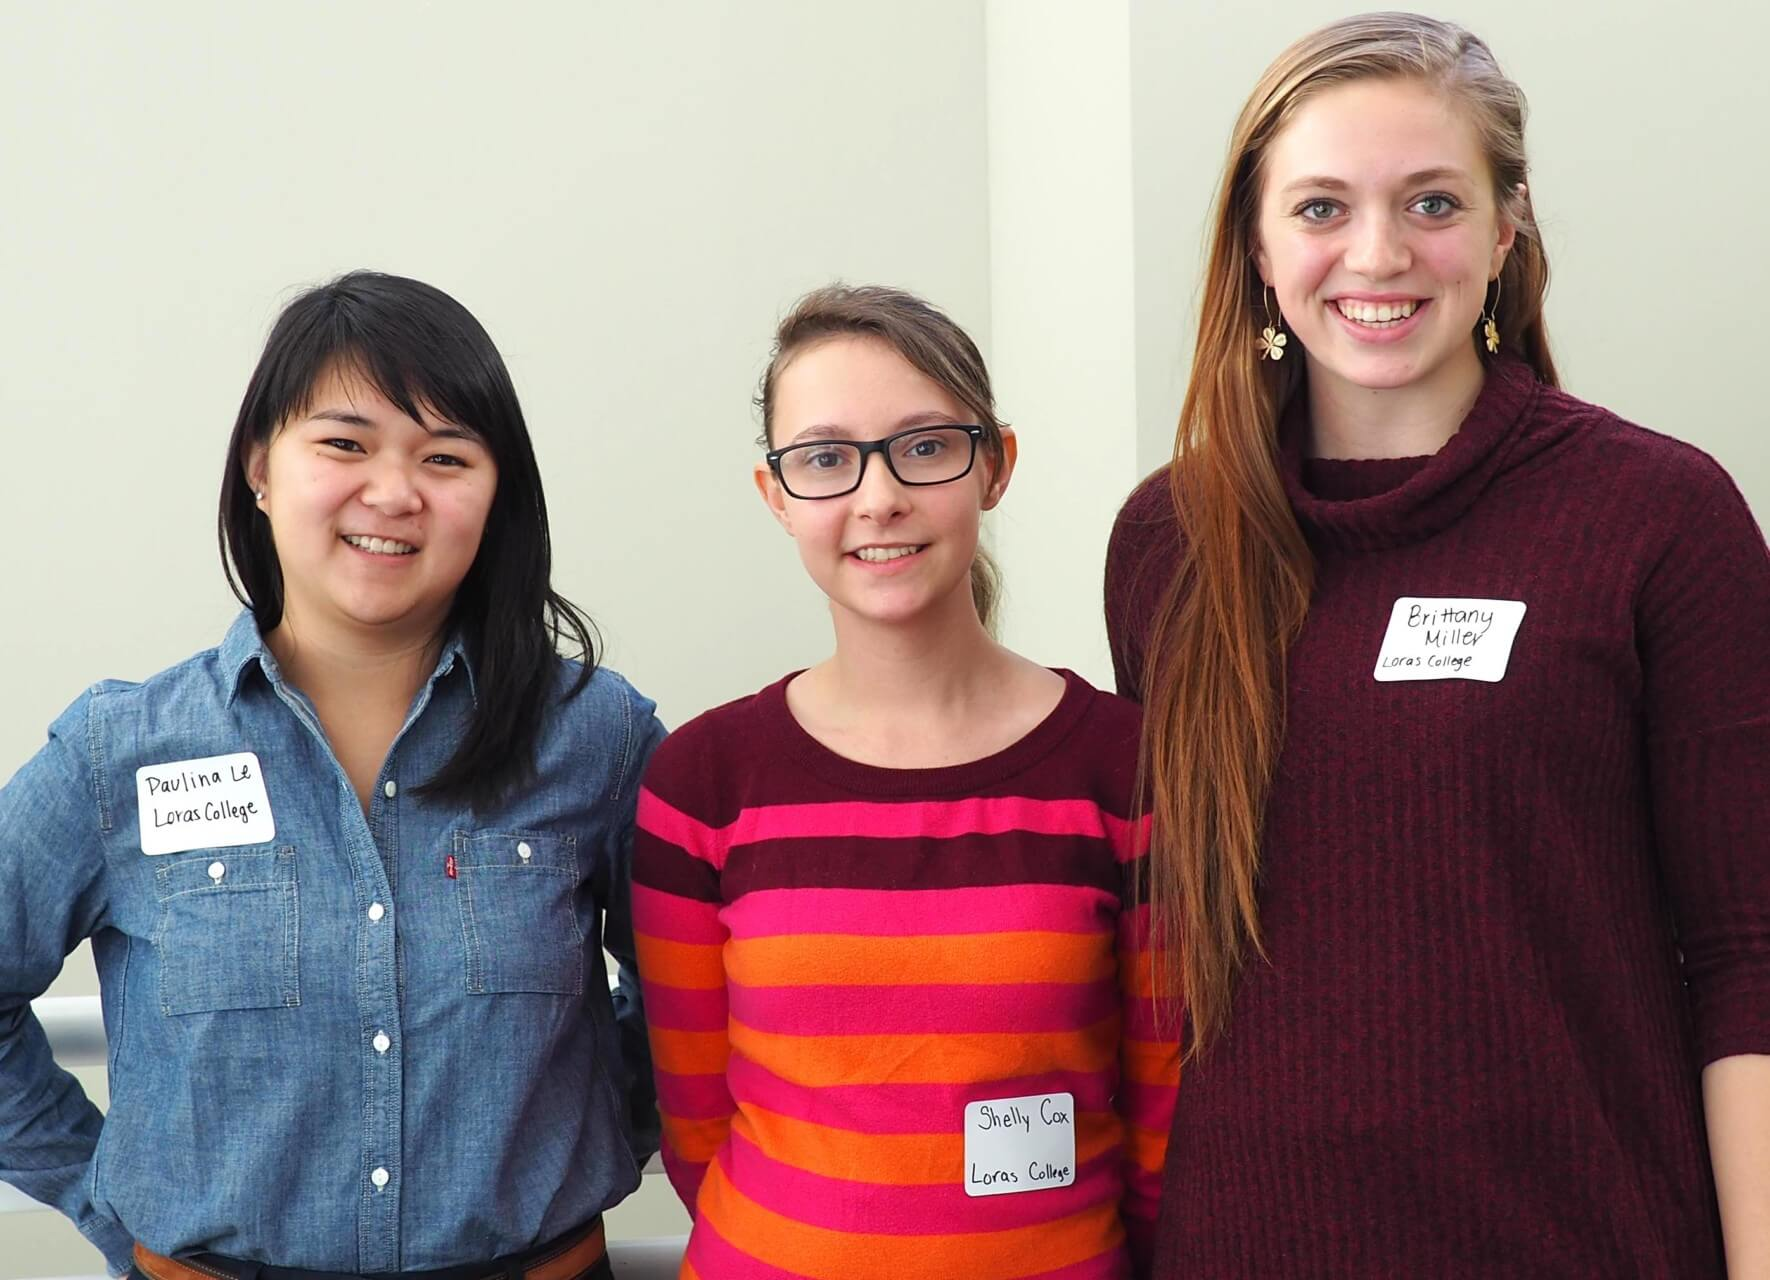 Loras College seniors Paulina Le (left) Sherrill, Iowa; Shelly Cox (center), Youngtown, Arizona; and Brittany Miller (right), Clear Lake, Iowa, received honorable mention at the recent 2016 MinneMUDAC Analytics Competition.